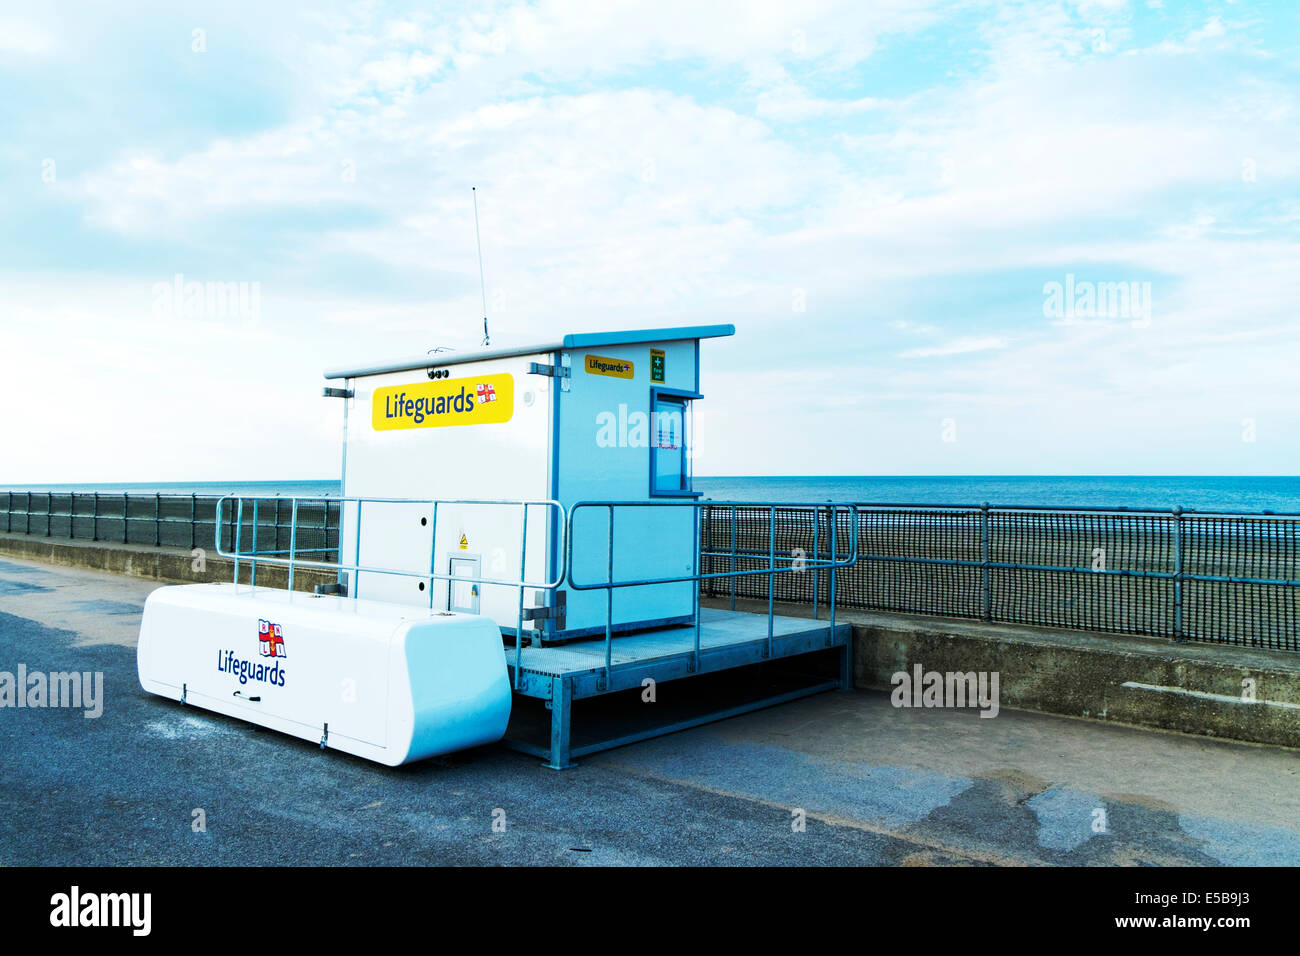 Sutton On Sea Lifeguards lifeguard station lookout hut beach wooden shack building Lincolnshire UK England - Stock Image